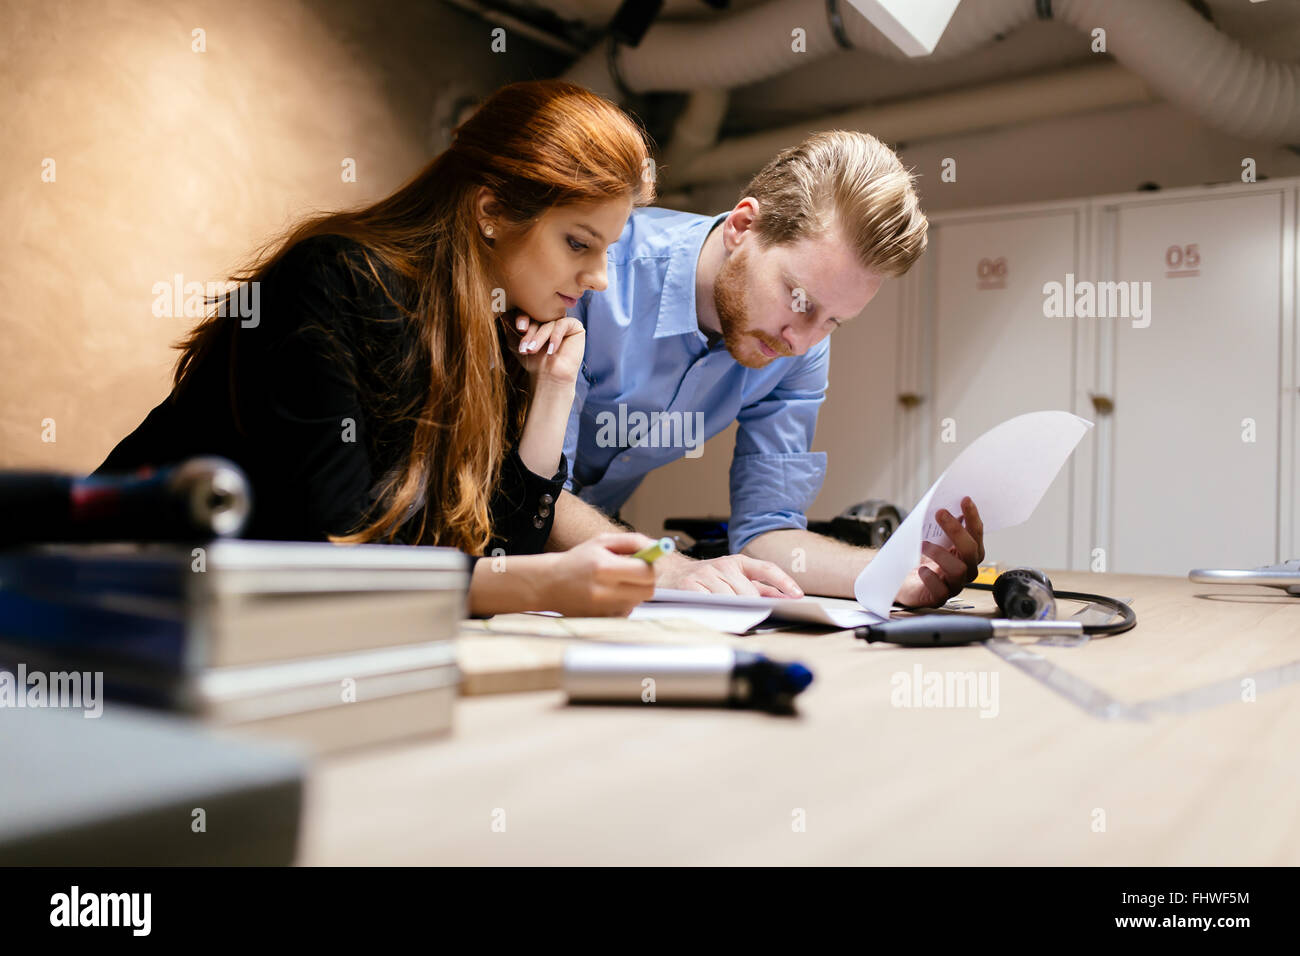 People working in modern beautiful workshop with professional equipment at hand - Stock Image